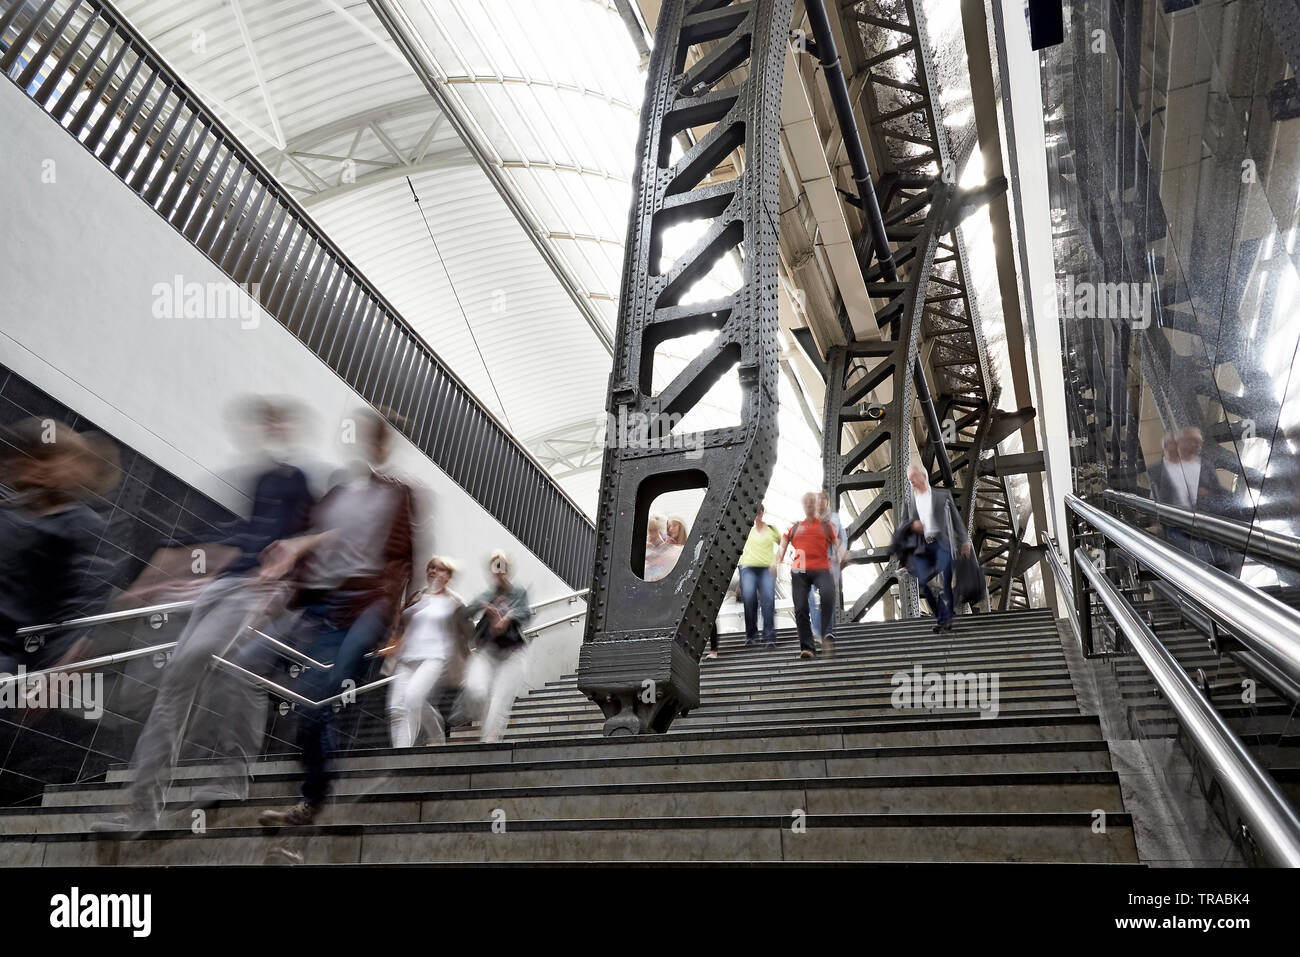 Low angle of the stairs leading up to the platform at Amsterdam central station with crowds of people commuting - Stock Image